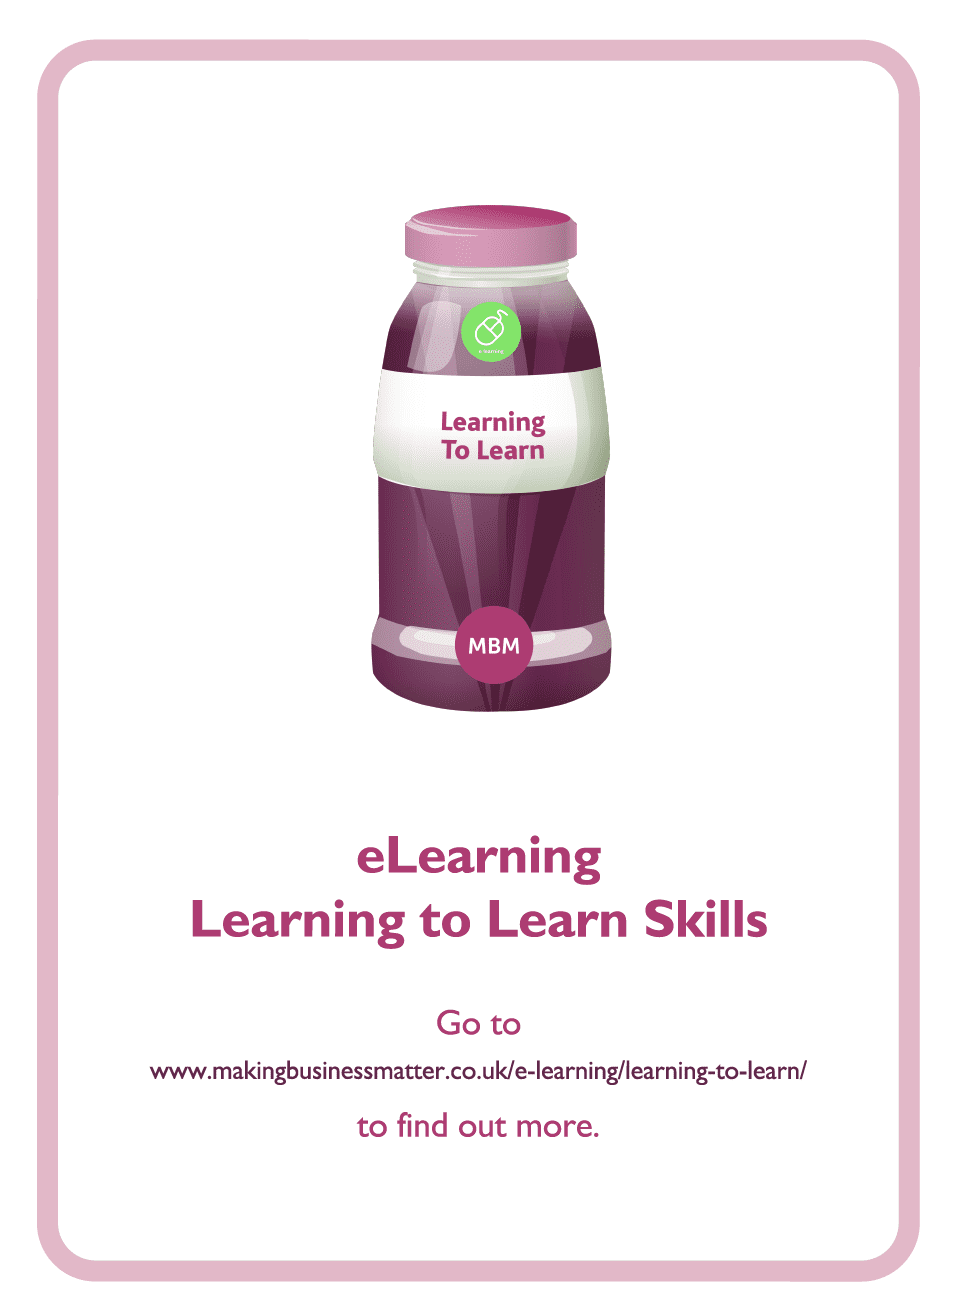 Learning to Learn coaching card titled eLearning